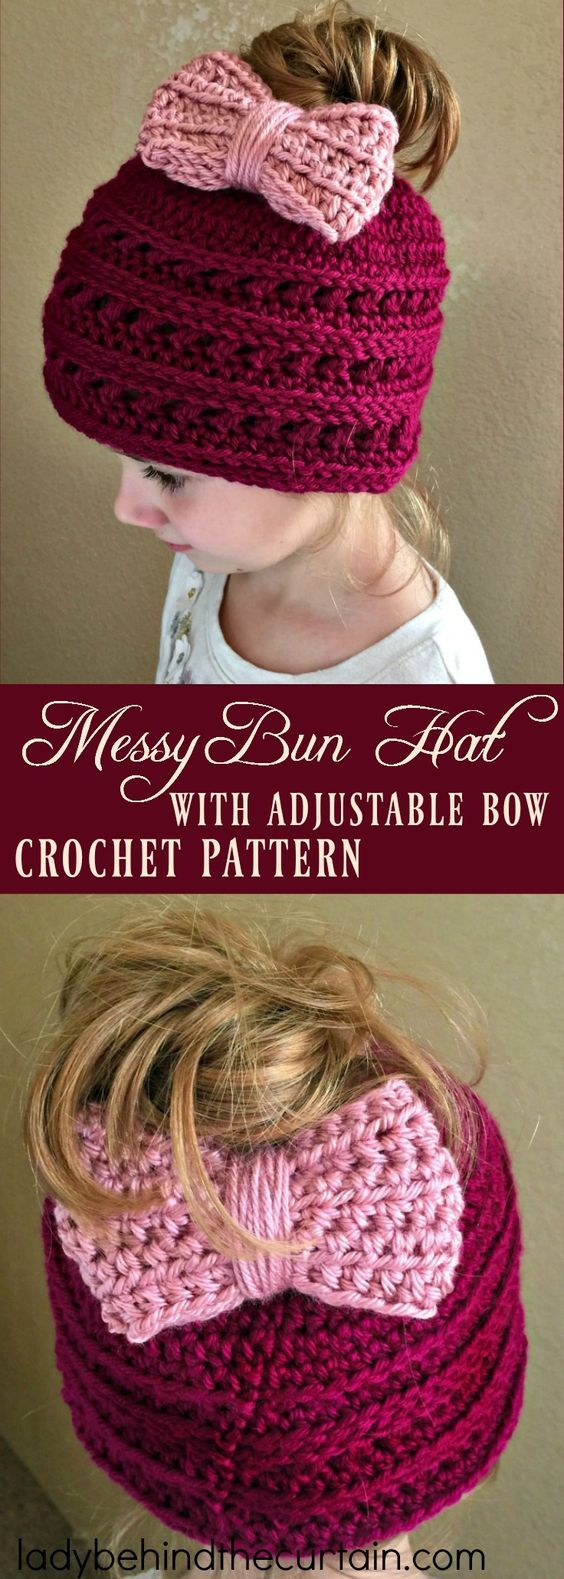 Messy Bun Hat with Adjustable Bow Crochet Pattern | Easy crochet ...